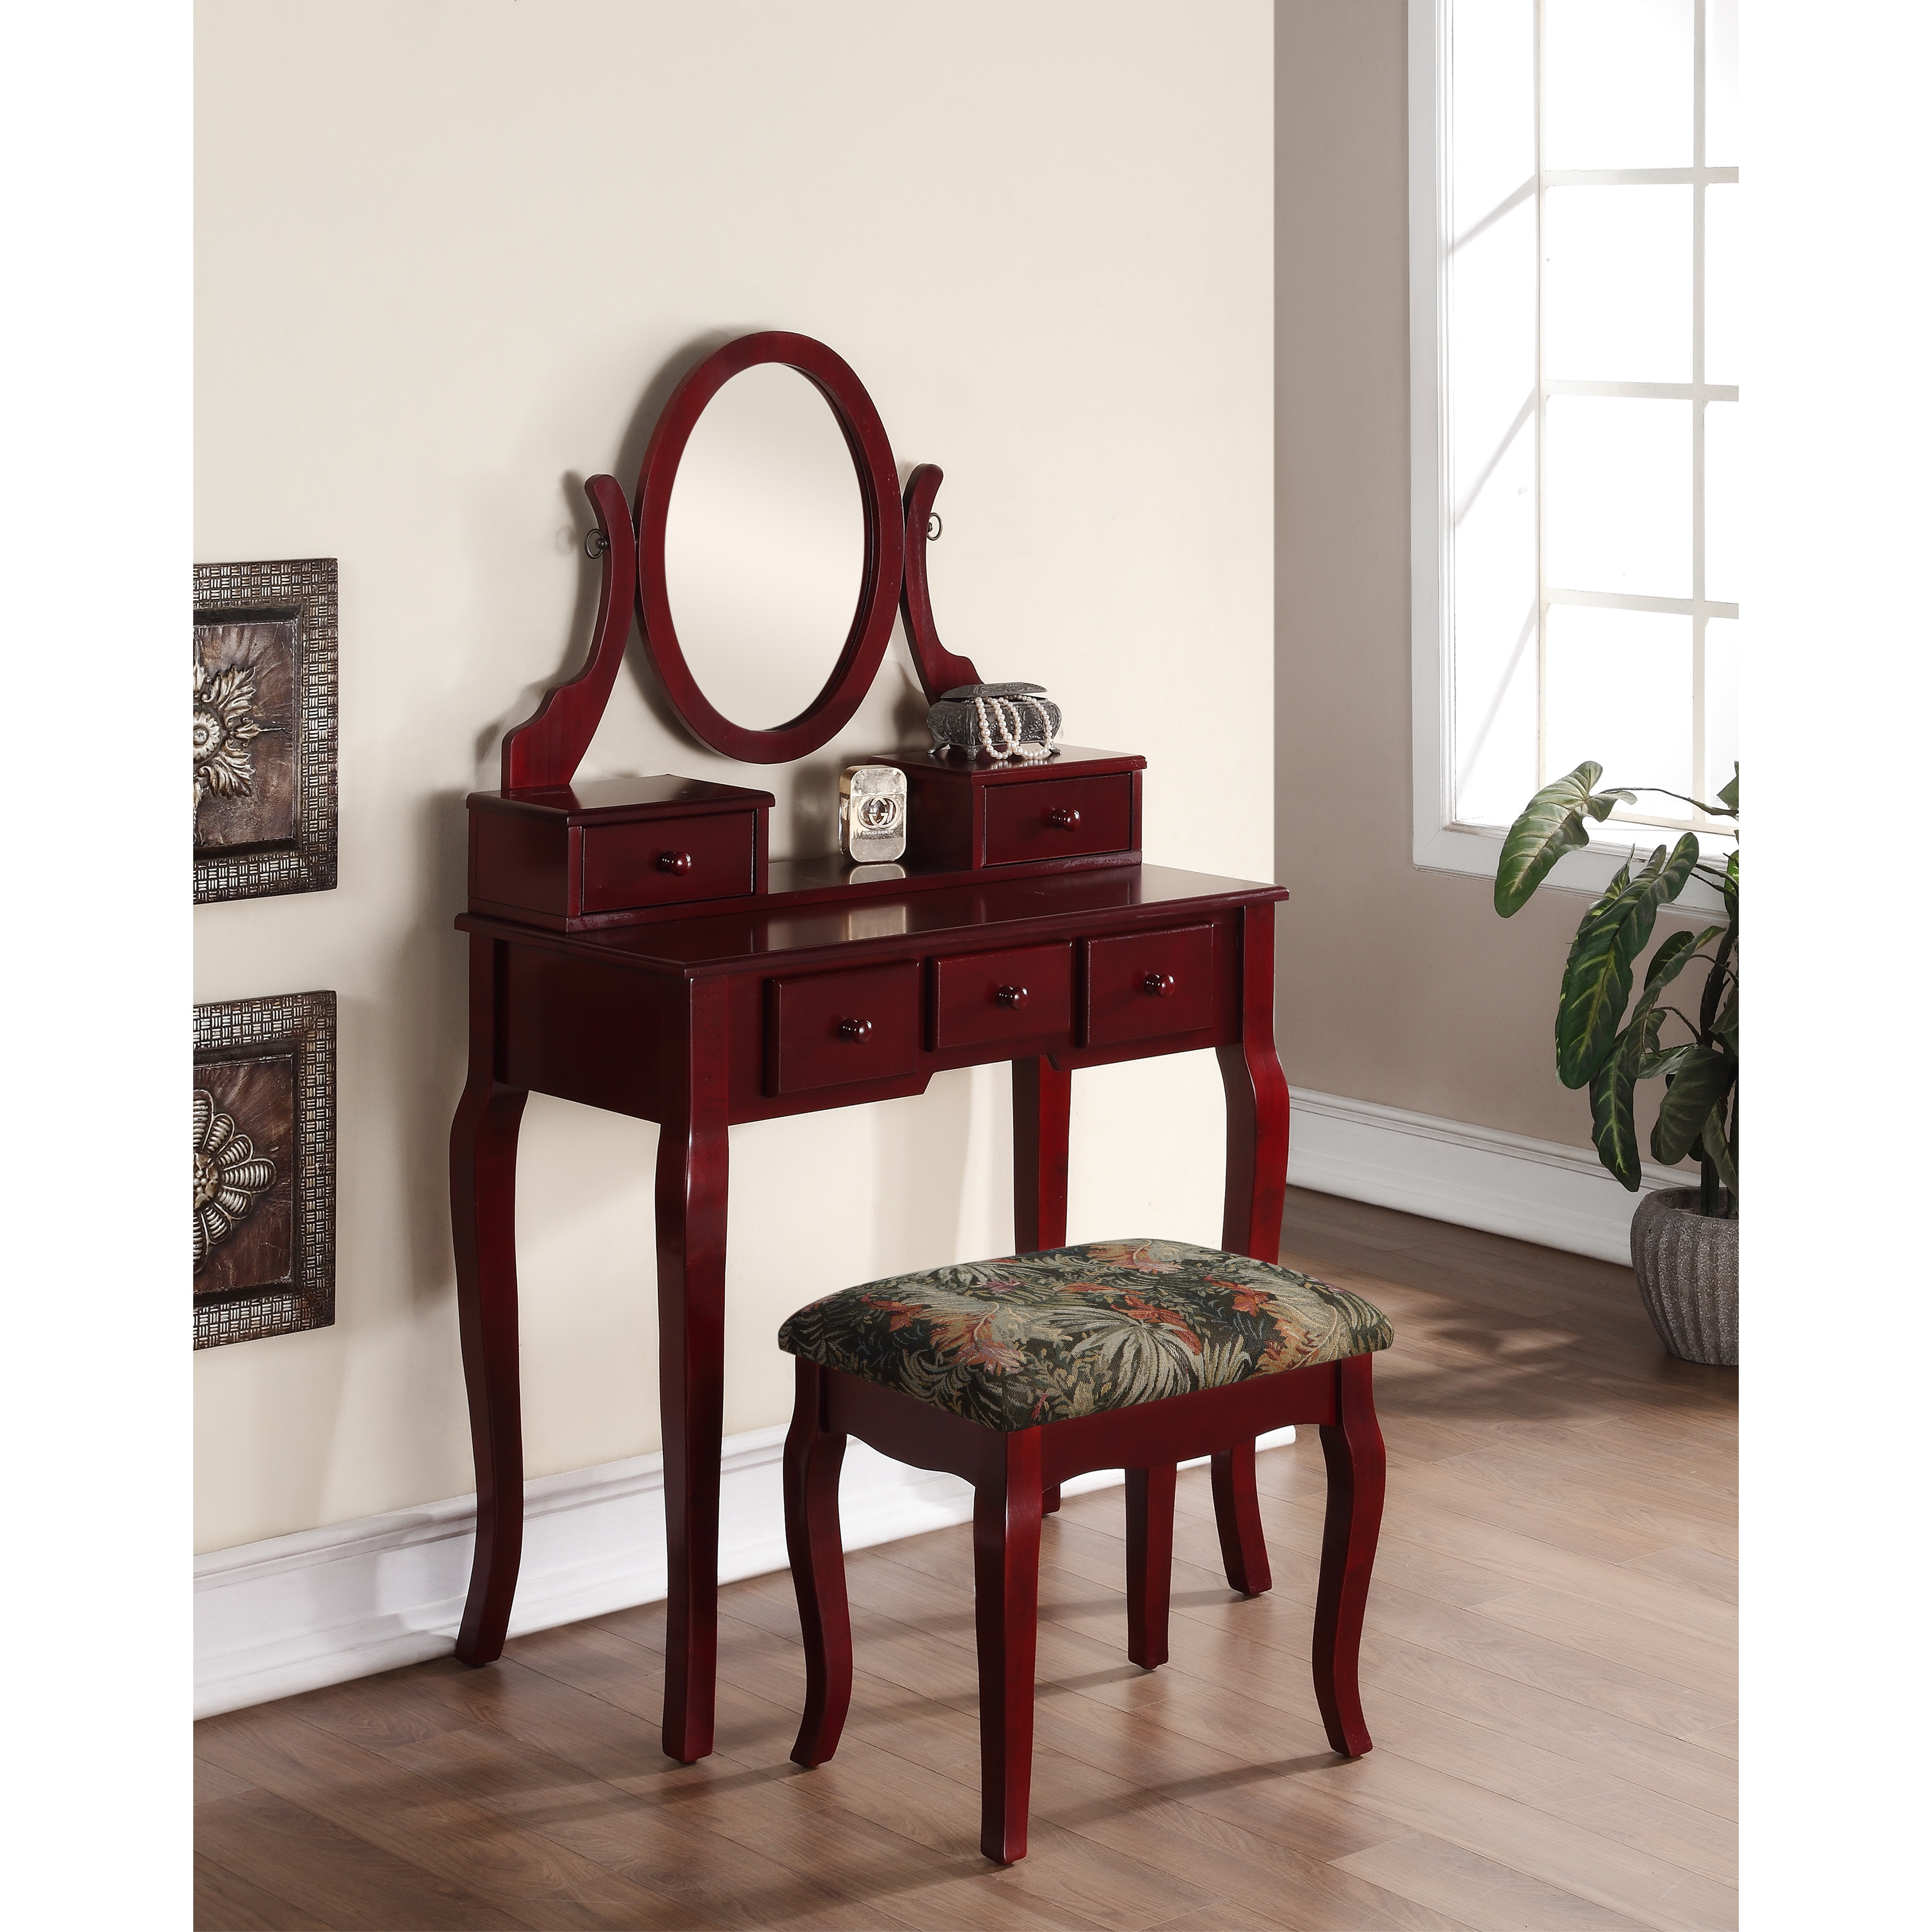 new concept 4bacf 41e88 Ashley Wood Cherry Makeup Vanity Table and Stool Set